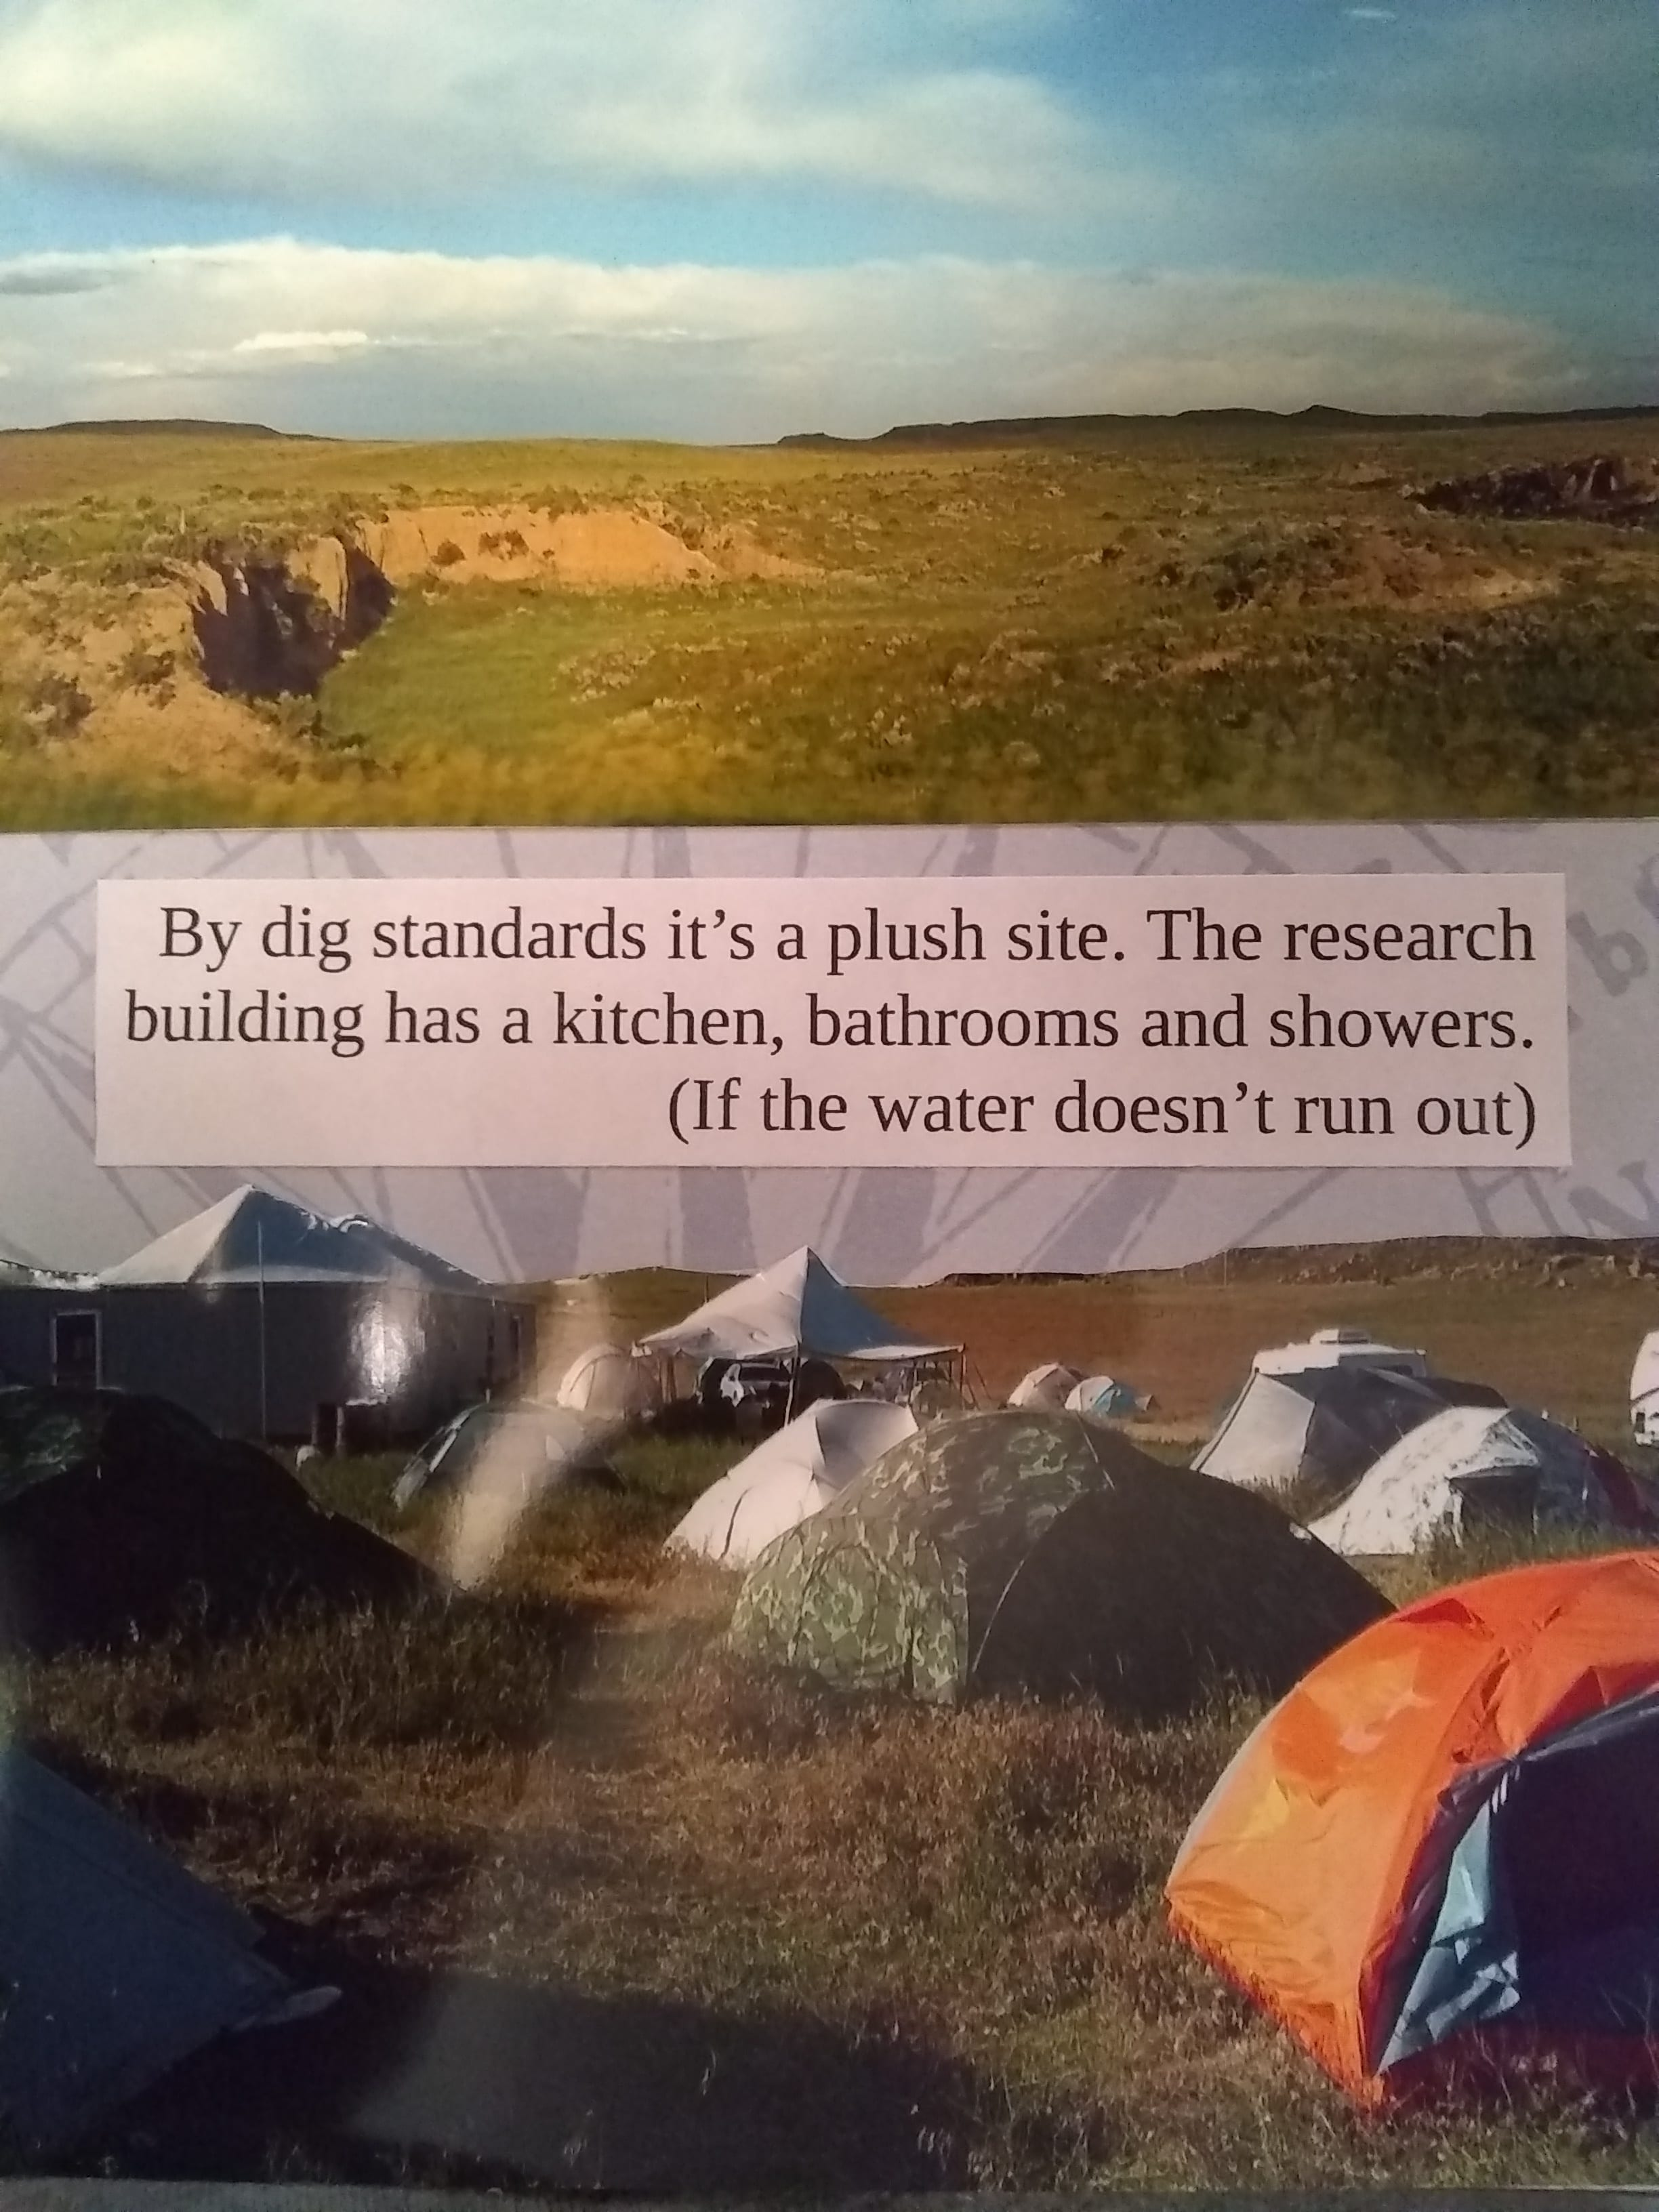 By dig standards it's a plush site. The research building has a kitchen, bathroom and showers. (If the water doesn't run out)